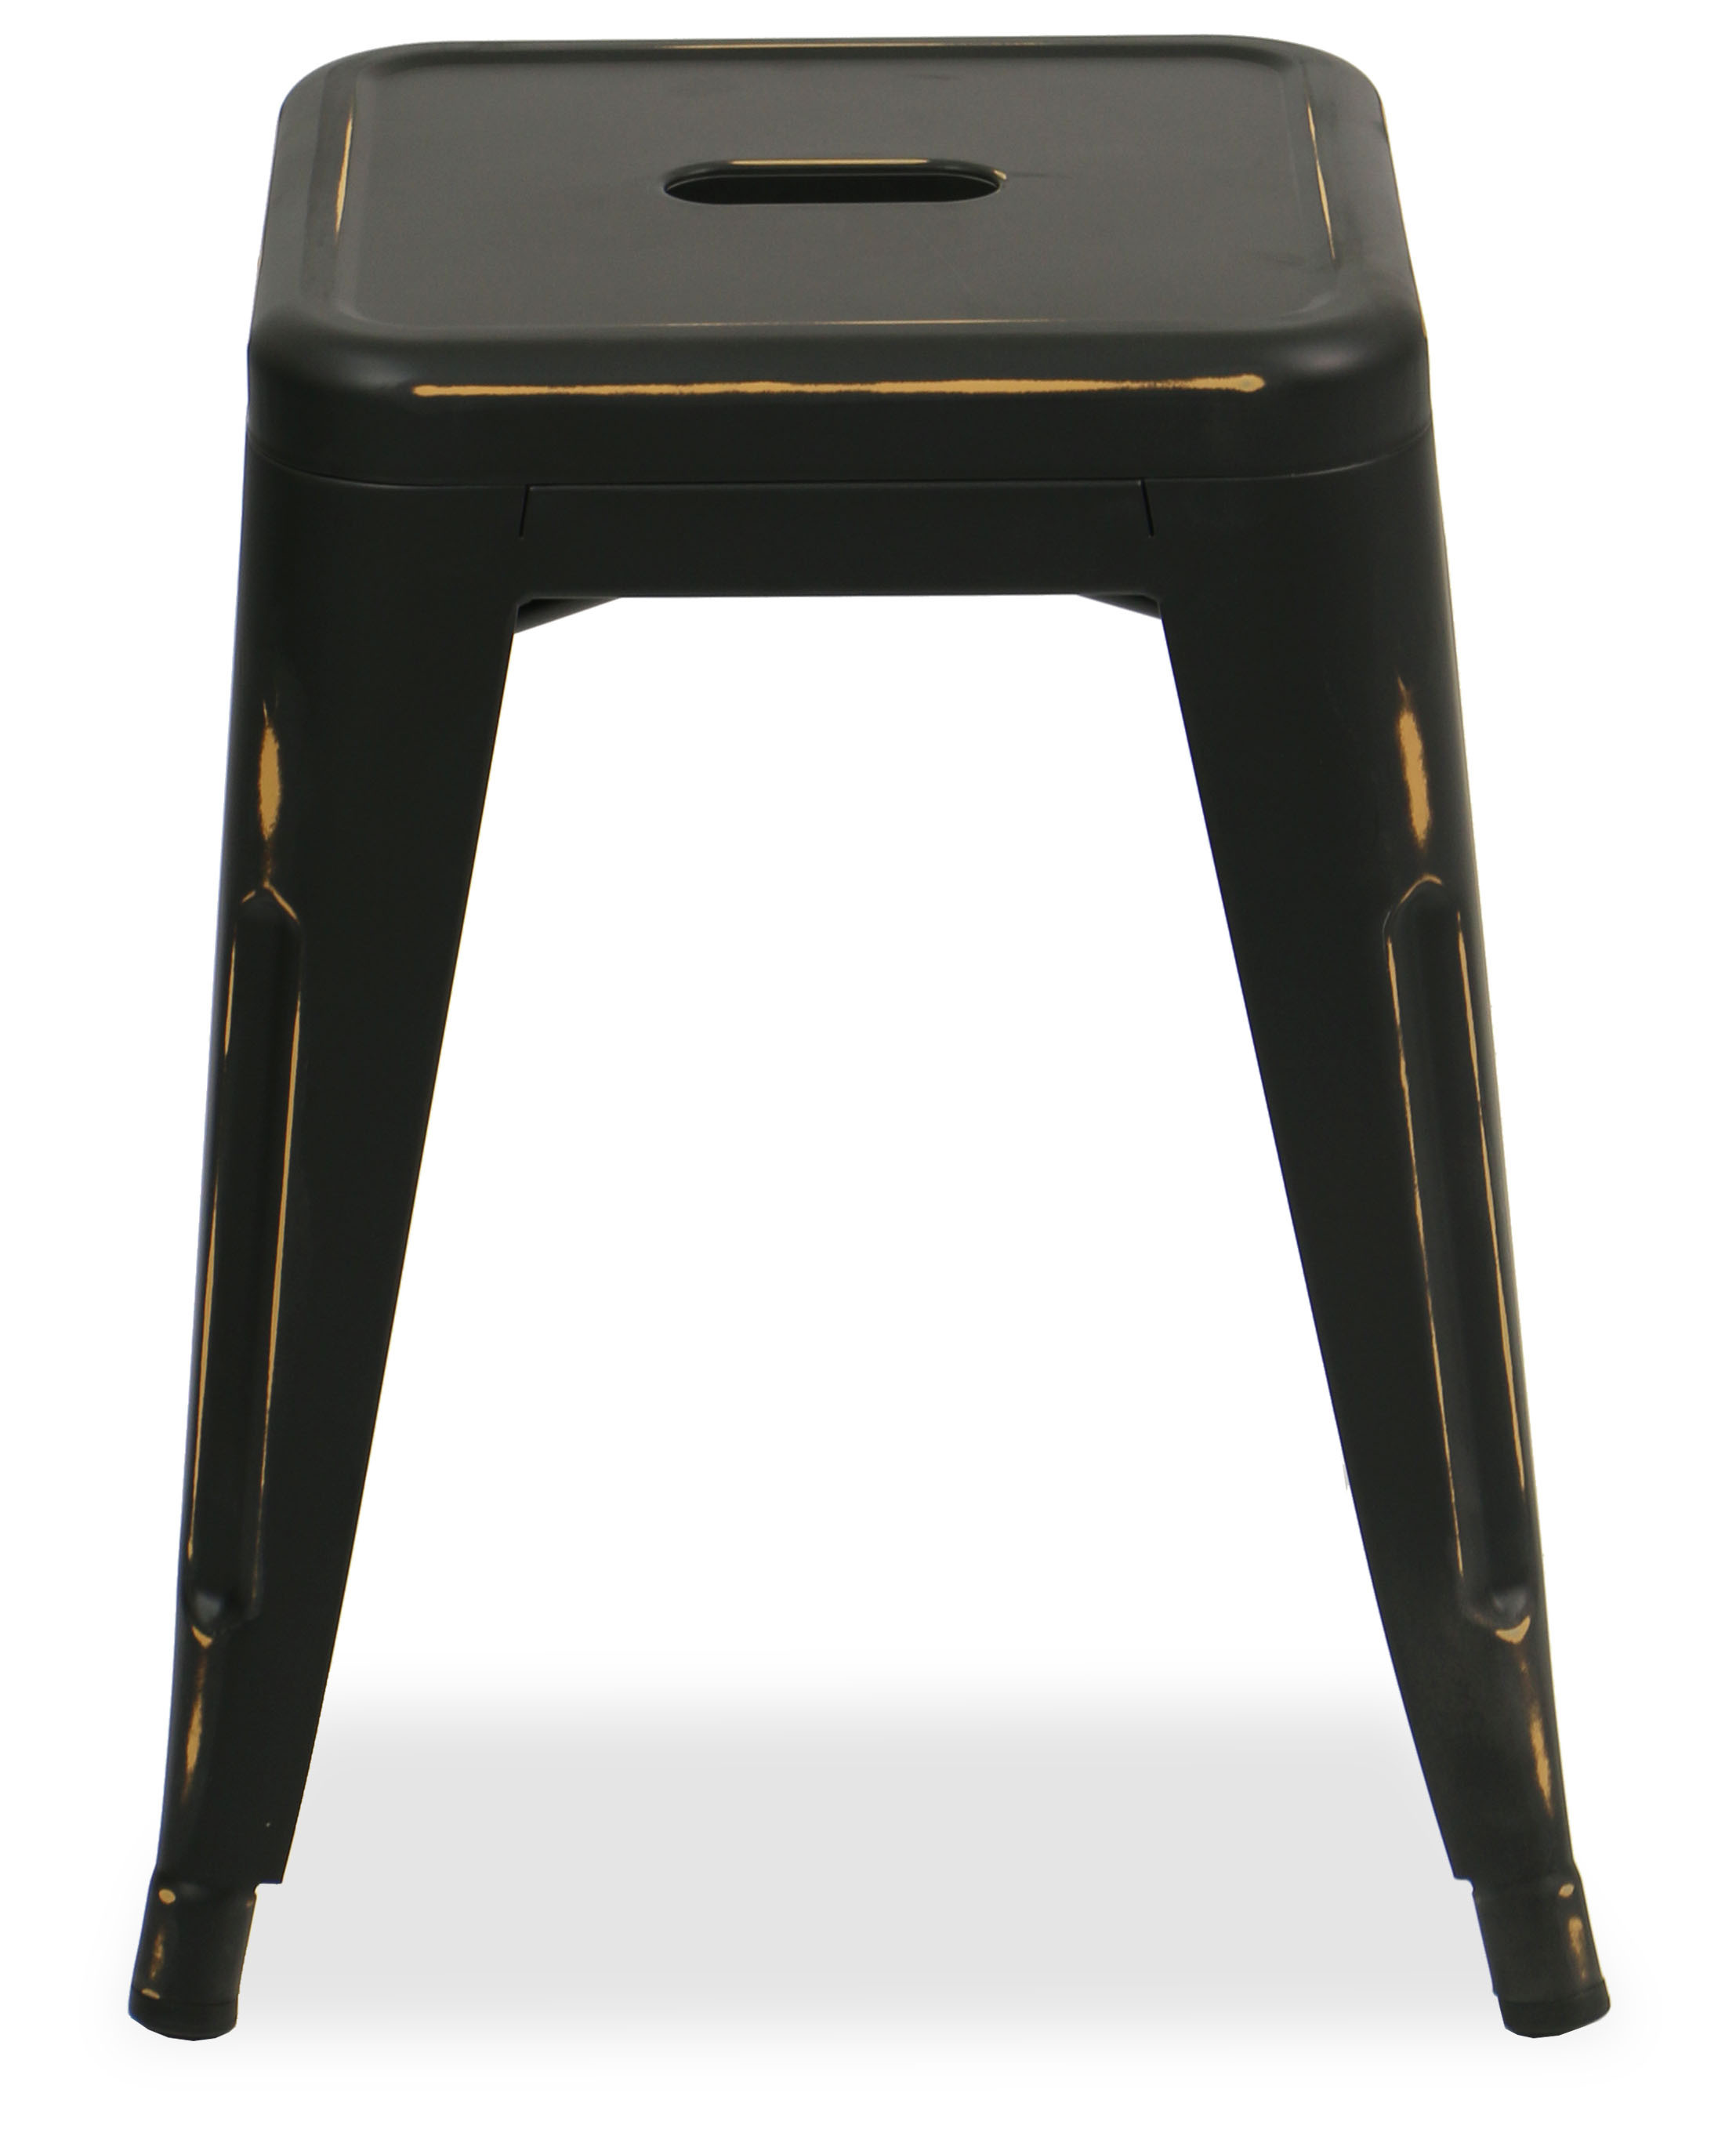 Living Room Stools Uk Retro Metal Dining Stool Antique Black Designer Chairs